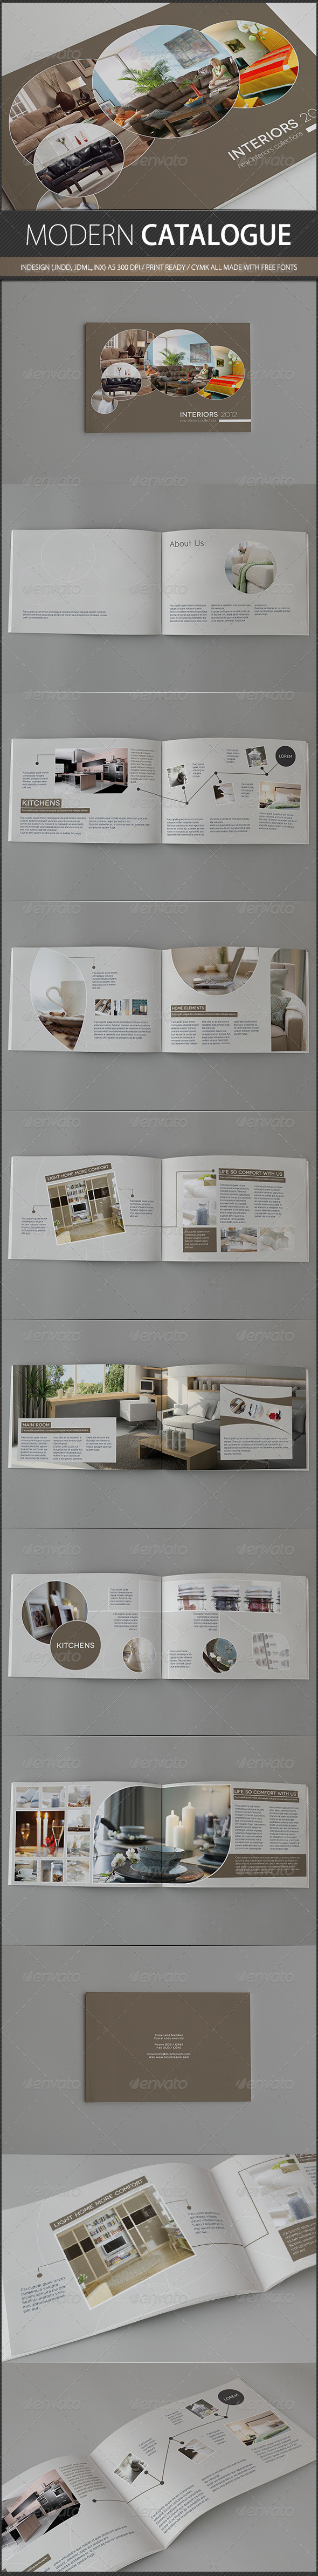 Modern Catalogue - Catalogs Brochures